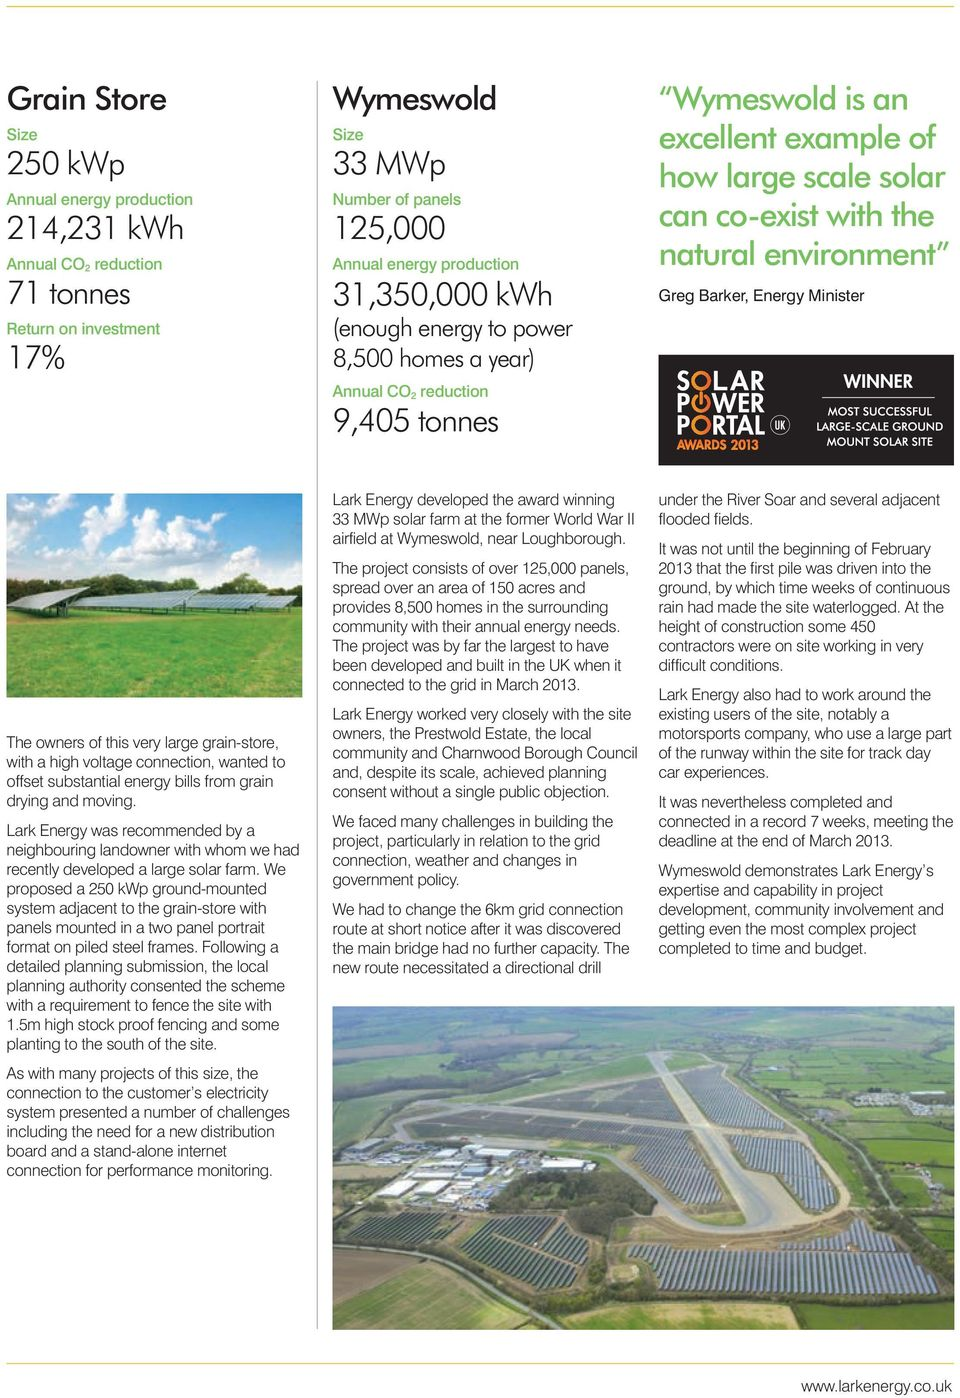 energy bills from grain drying and moving. Lark Energy was recommended by a neighbouring landowner with whom we had recently developed a large solar farm.